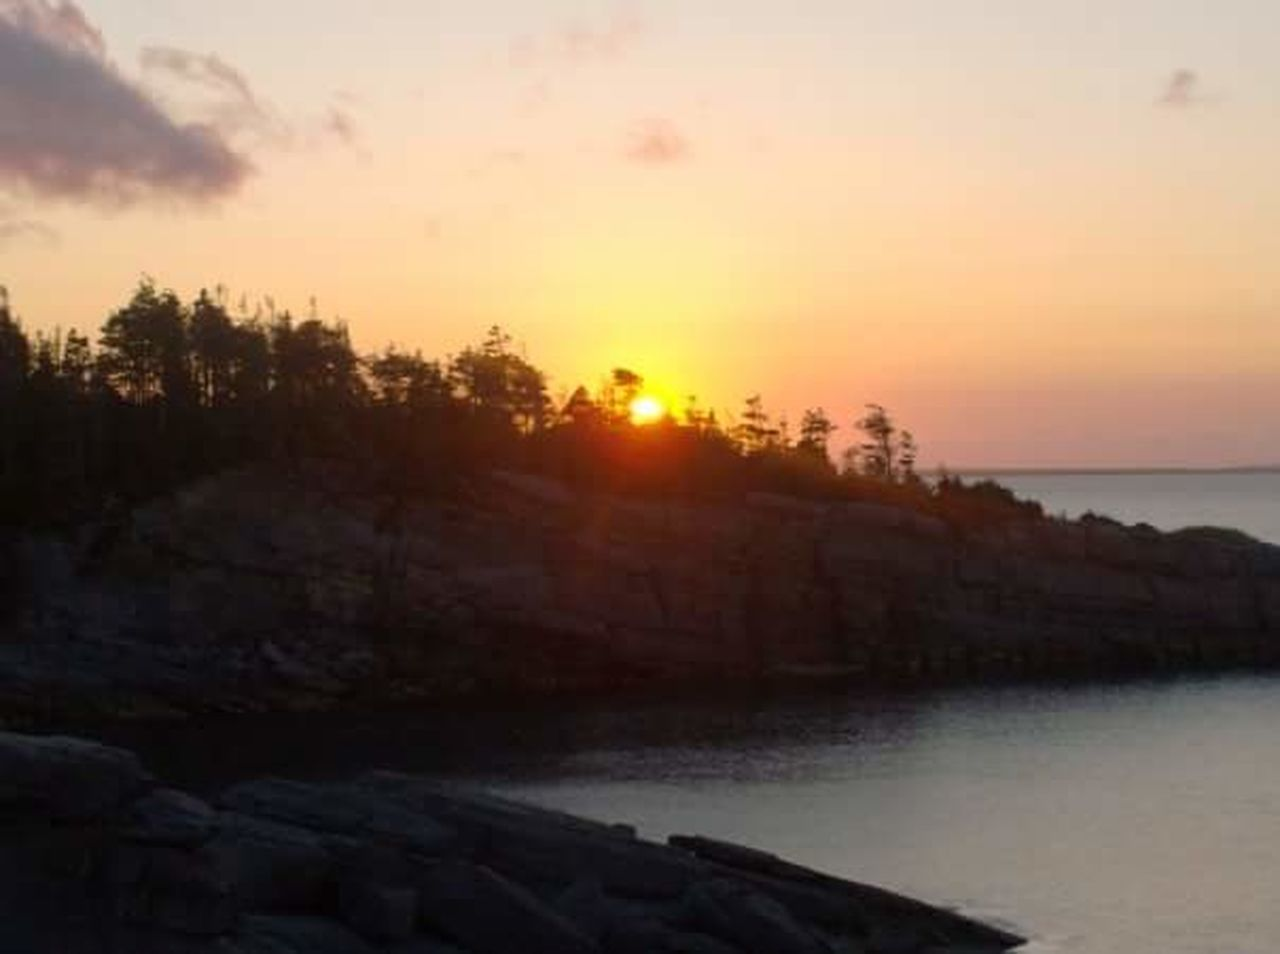 NFLD Sunset Sea Travel Nature Water Outdoors Travel Destinations Sky Landscape Beach Tree Scenics Cloud - Sky No People Beauty In Nature